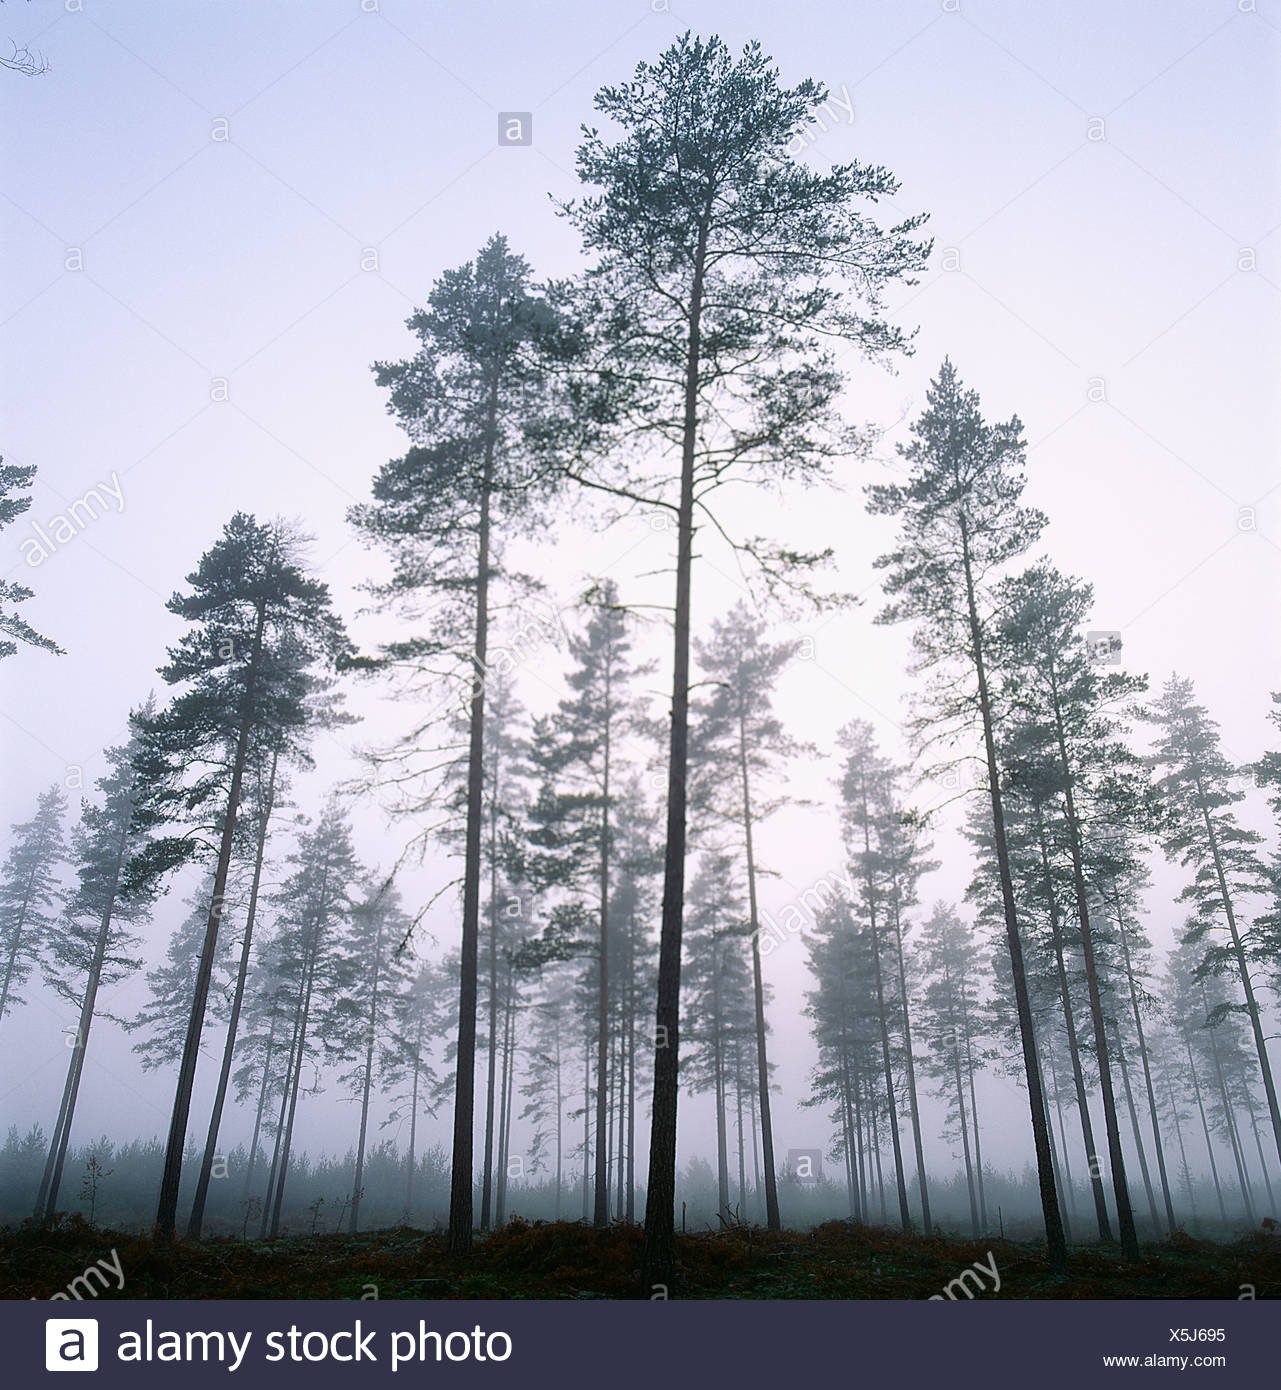 View of coniferous forest - Stock Image